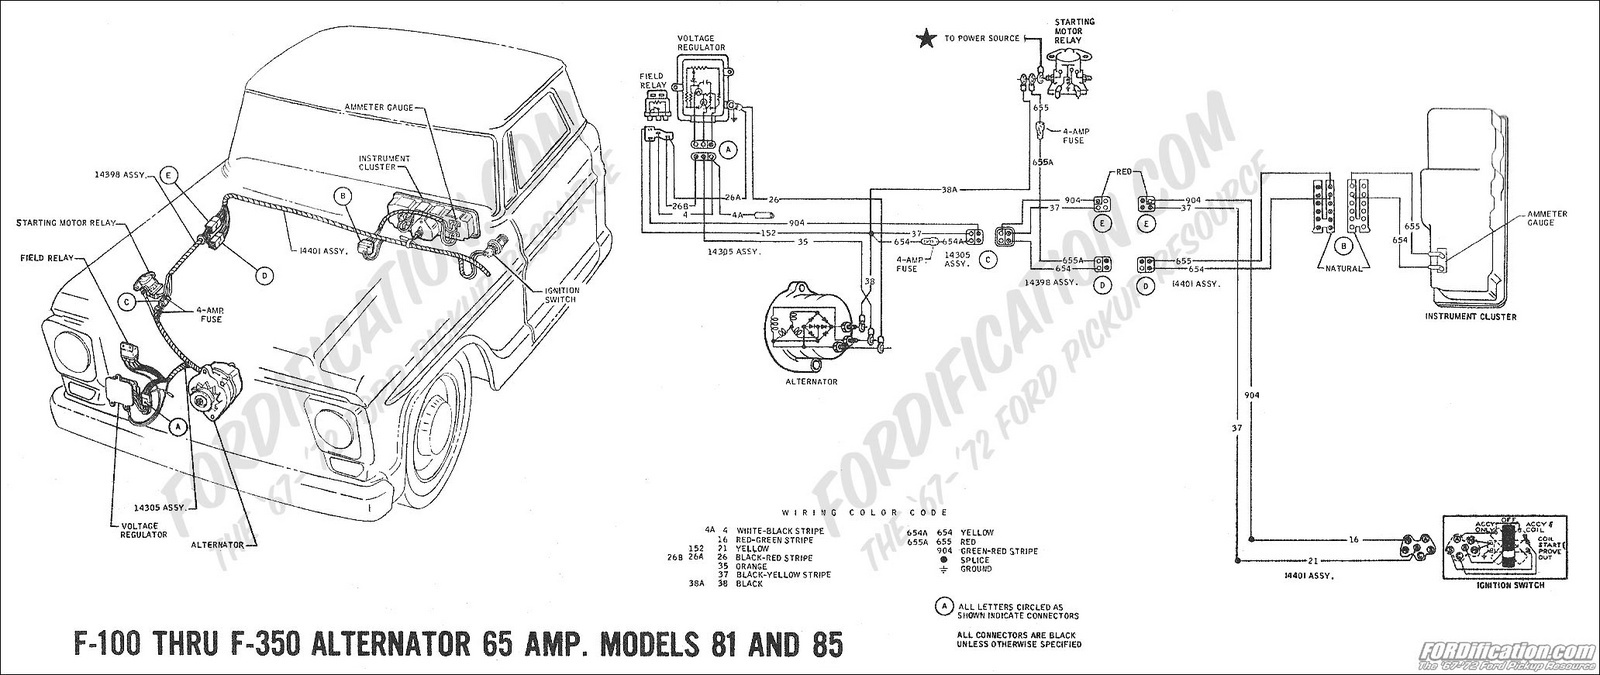 1987 Ford Alternator Wiring Diagram Data 1998 F 150 Starter 1982 F150 Fe Diagrams